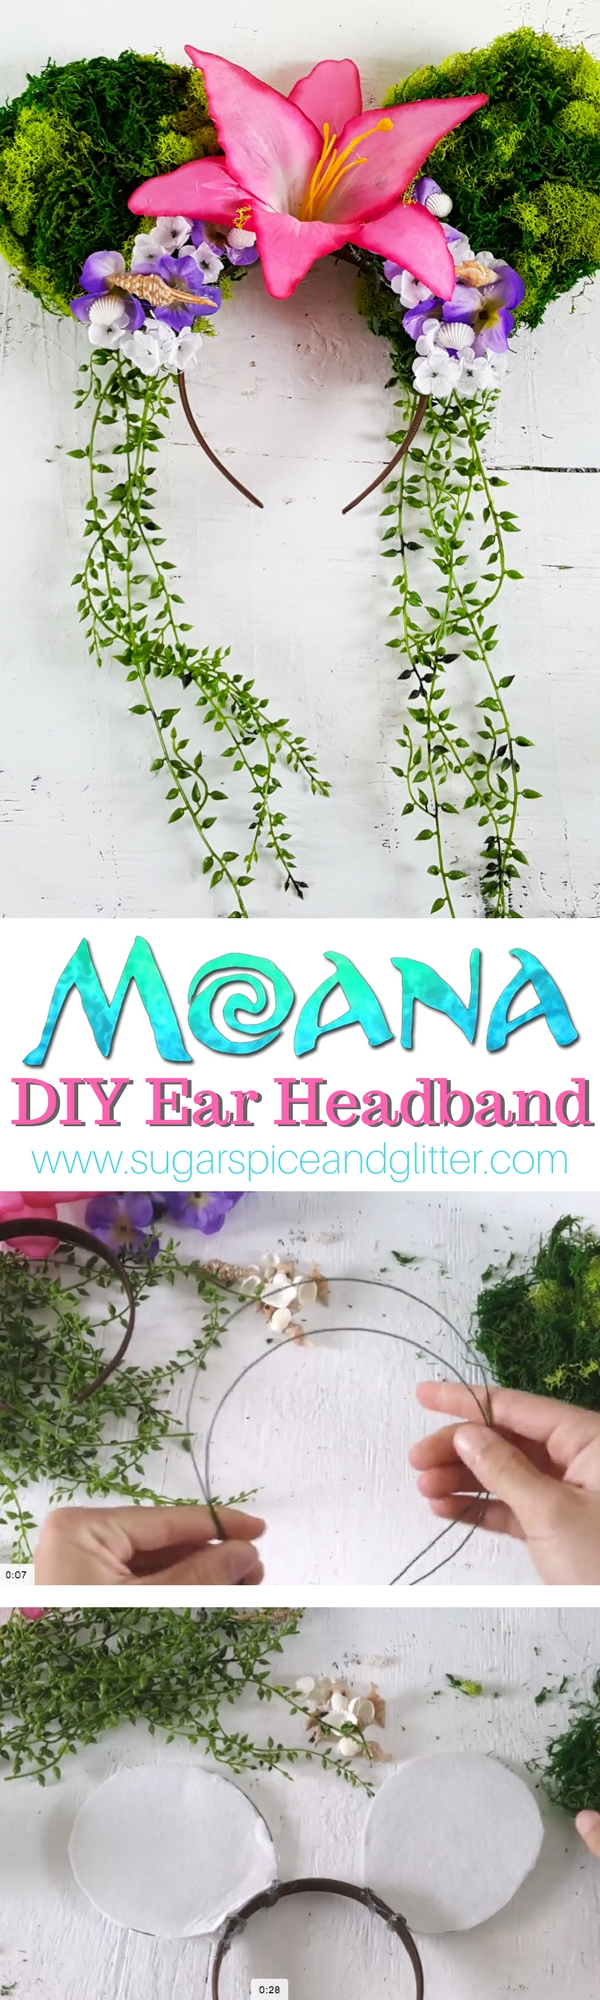 Moana Tefiti Mickey Mouse Ears perfect for a Moana party or DIY accessories for wearing to DisneyWorld